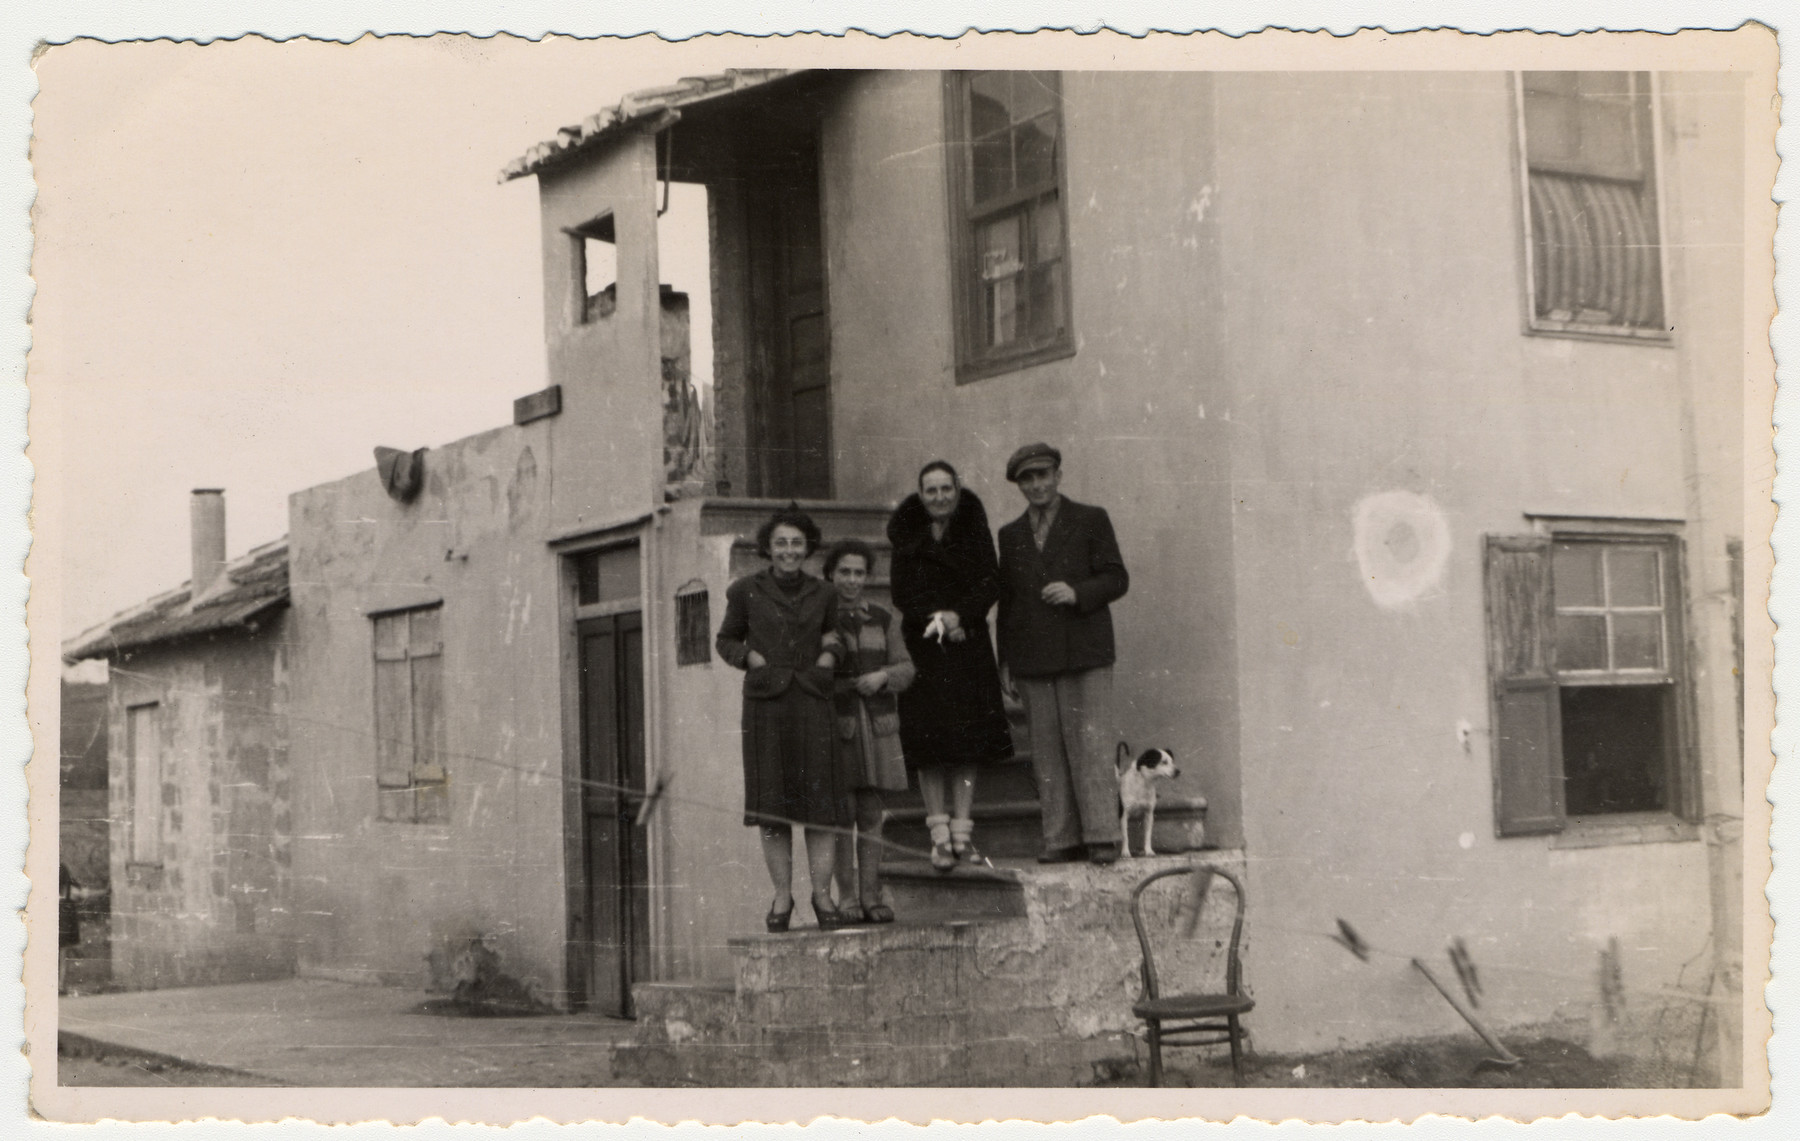 Jewish refugees stand on the steps of their home in Albania.  Pictured from left to right are Alice Gerechter, her daughter Johanna Jutta Gerechter, Lizalotte Pilku and Siegbert Gerechter.  The Gerechter family lived in this house from June 1941 to August 1943.